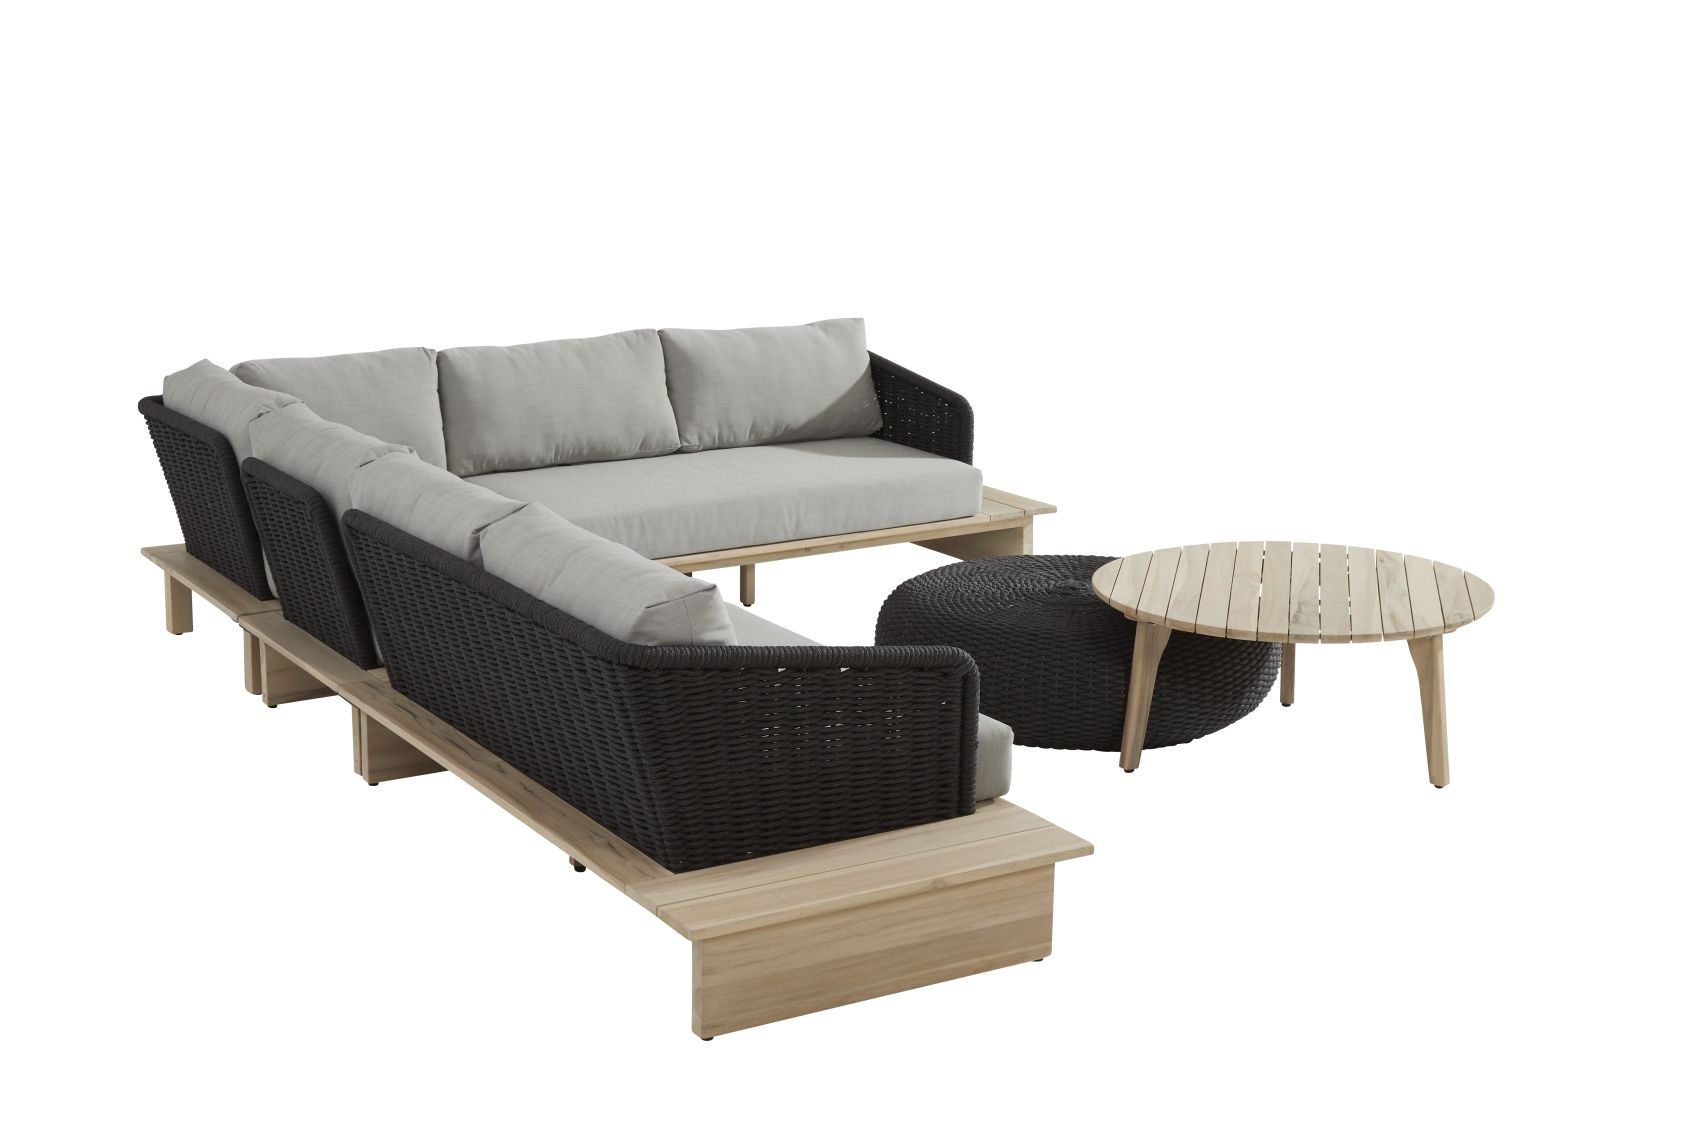 4 seasons outdoor altea lounge set sale latour. Black Bedroom Furniture Sets. Home Design Ideas